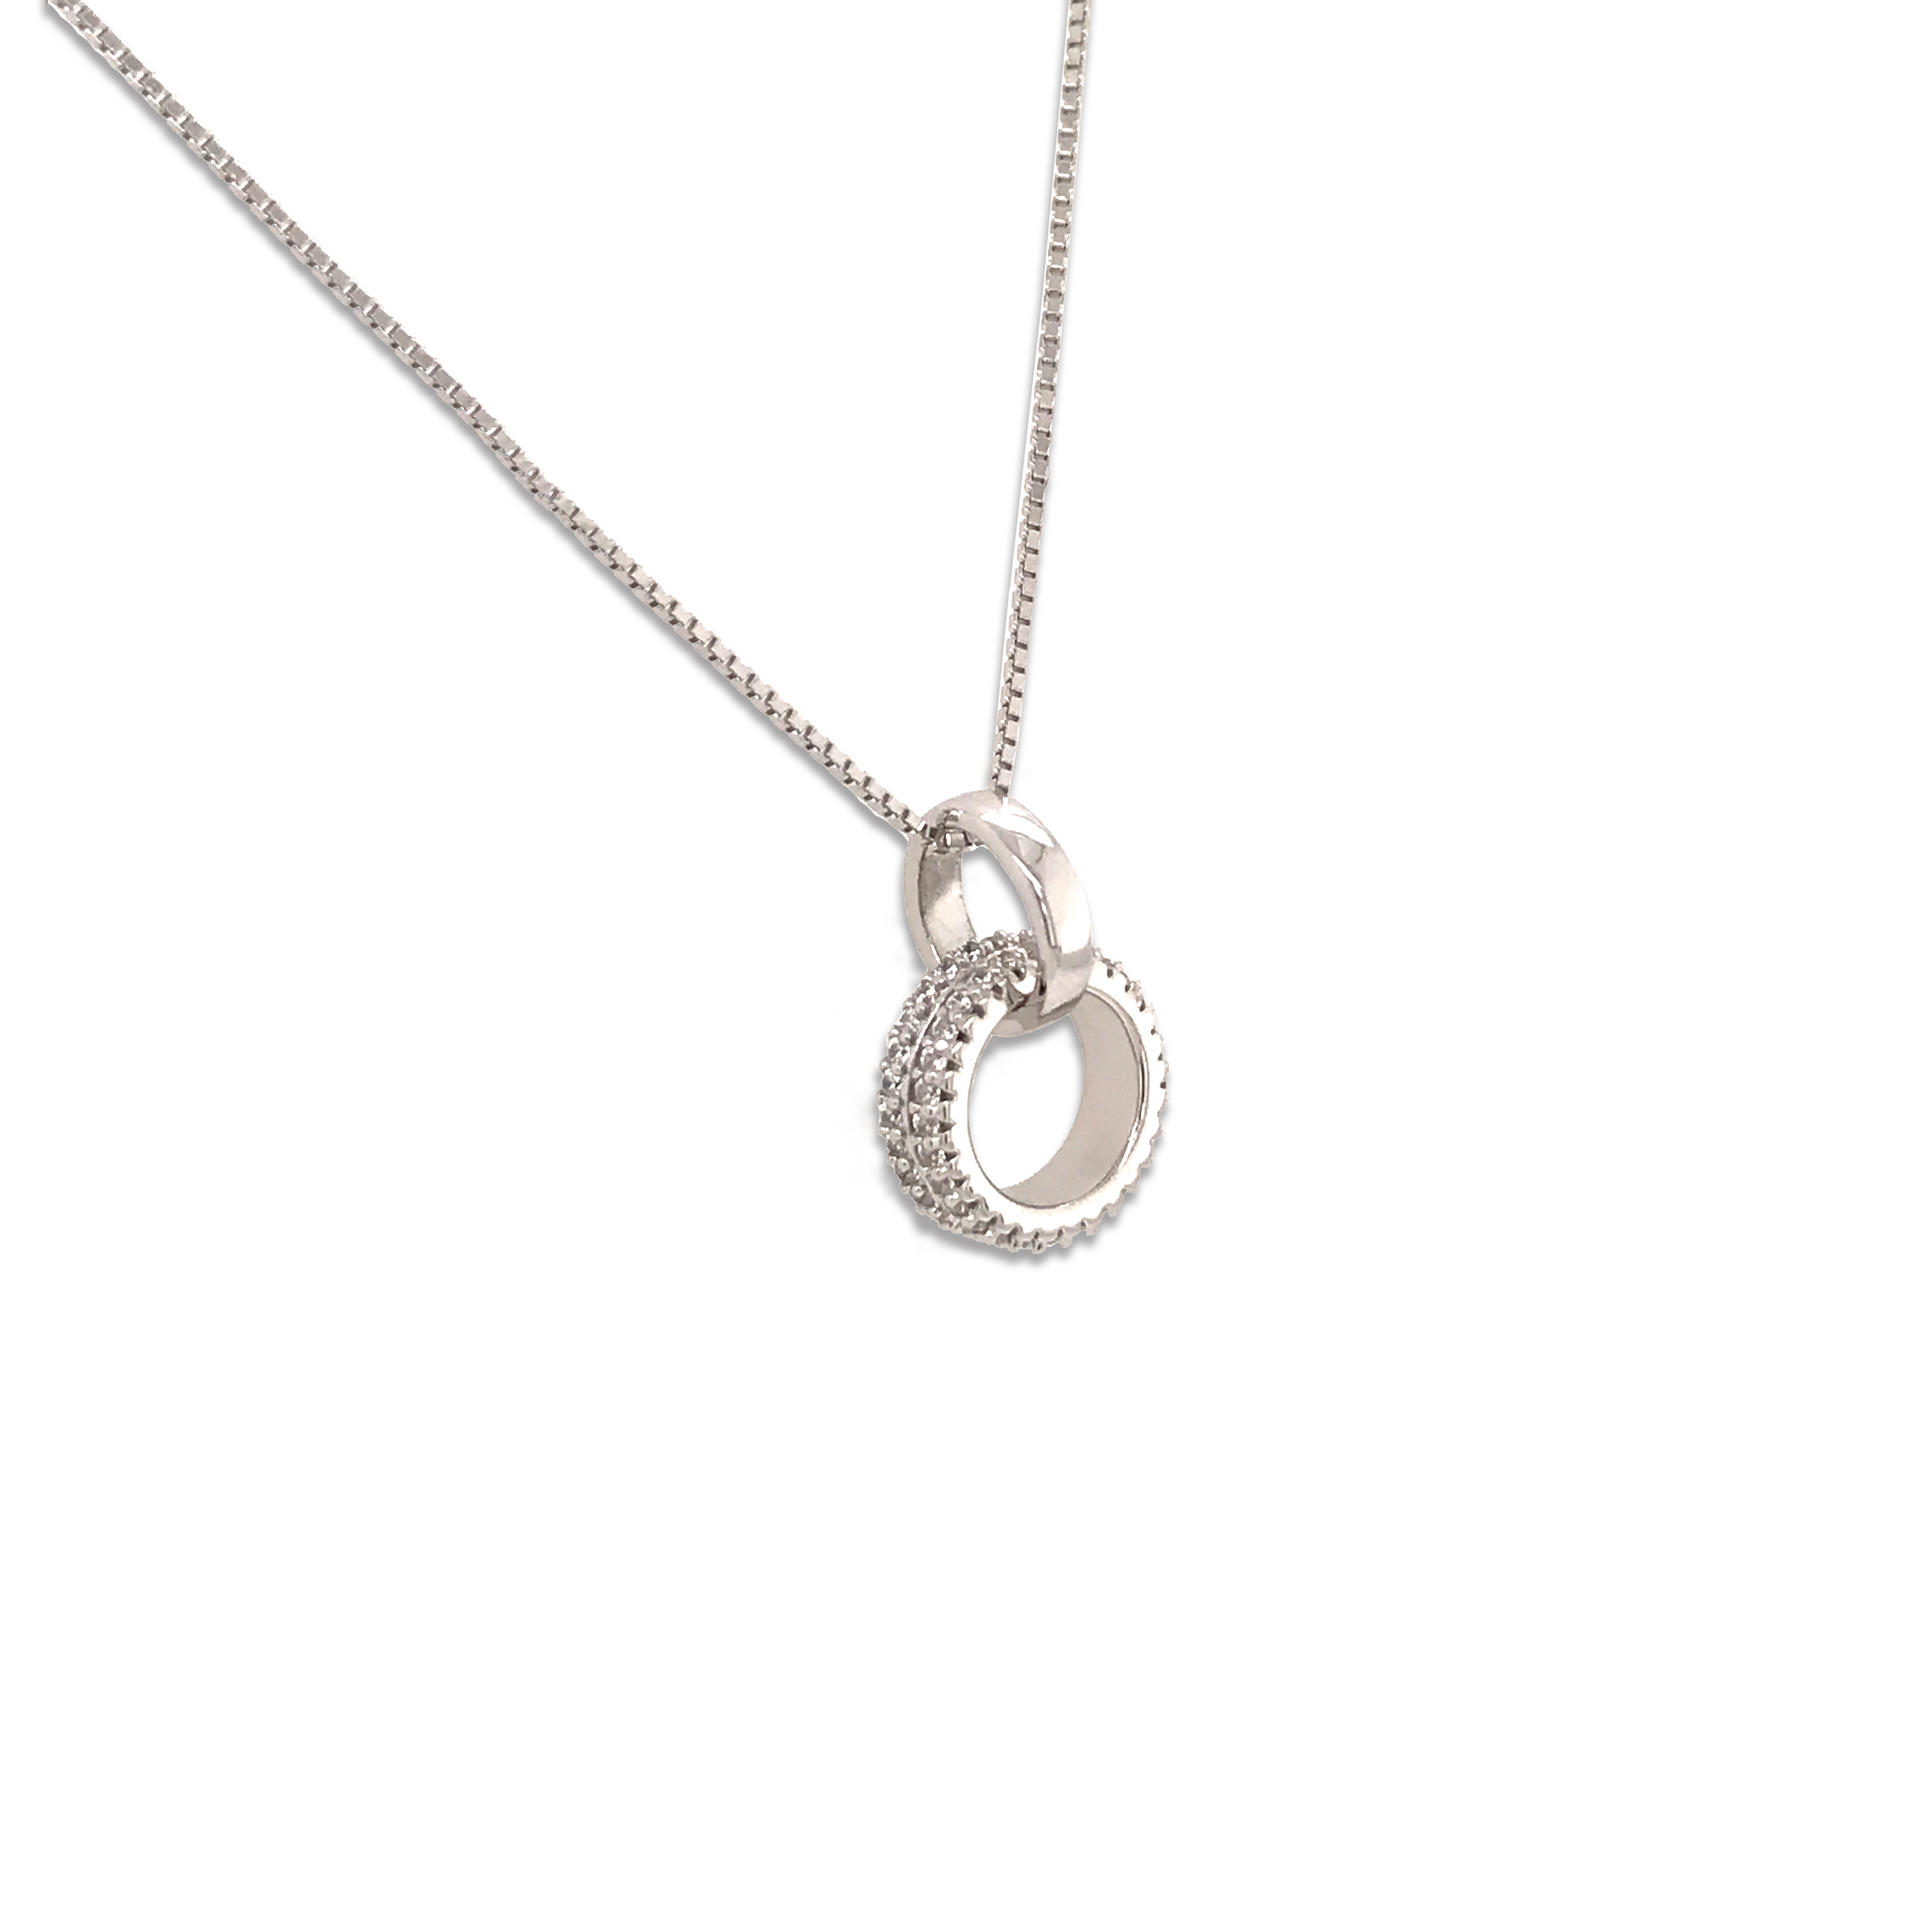 New Hot Style Box Chain Two Circles Cross In Together Design Necklace